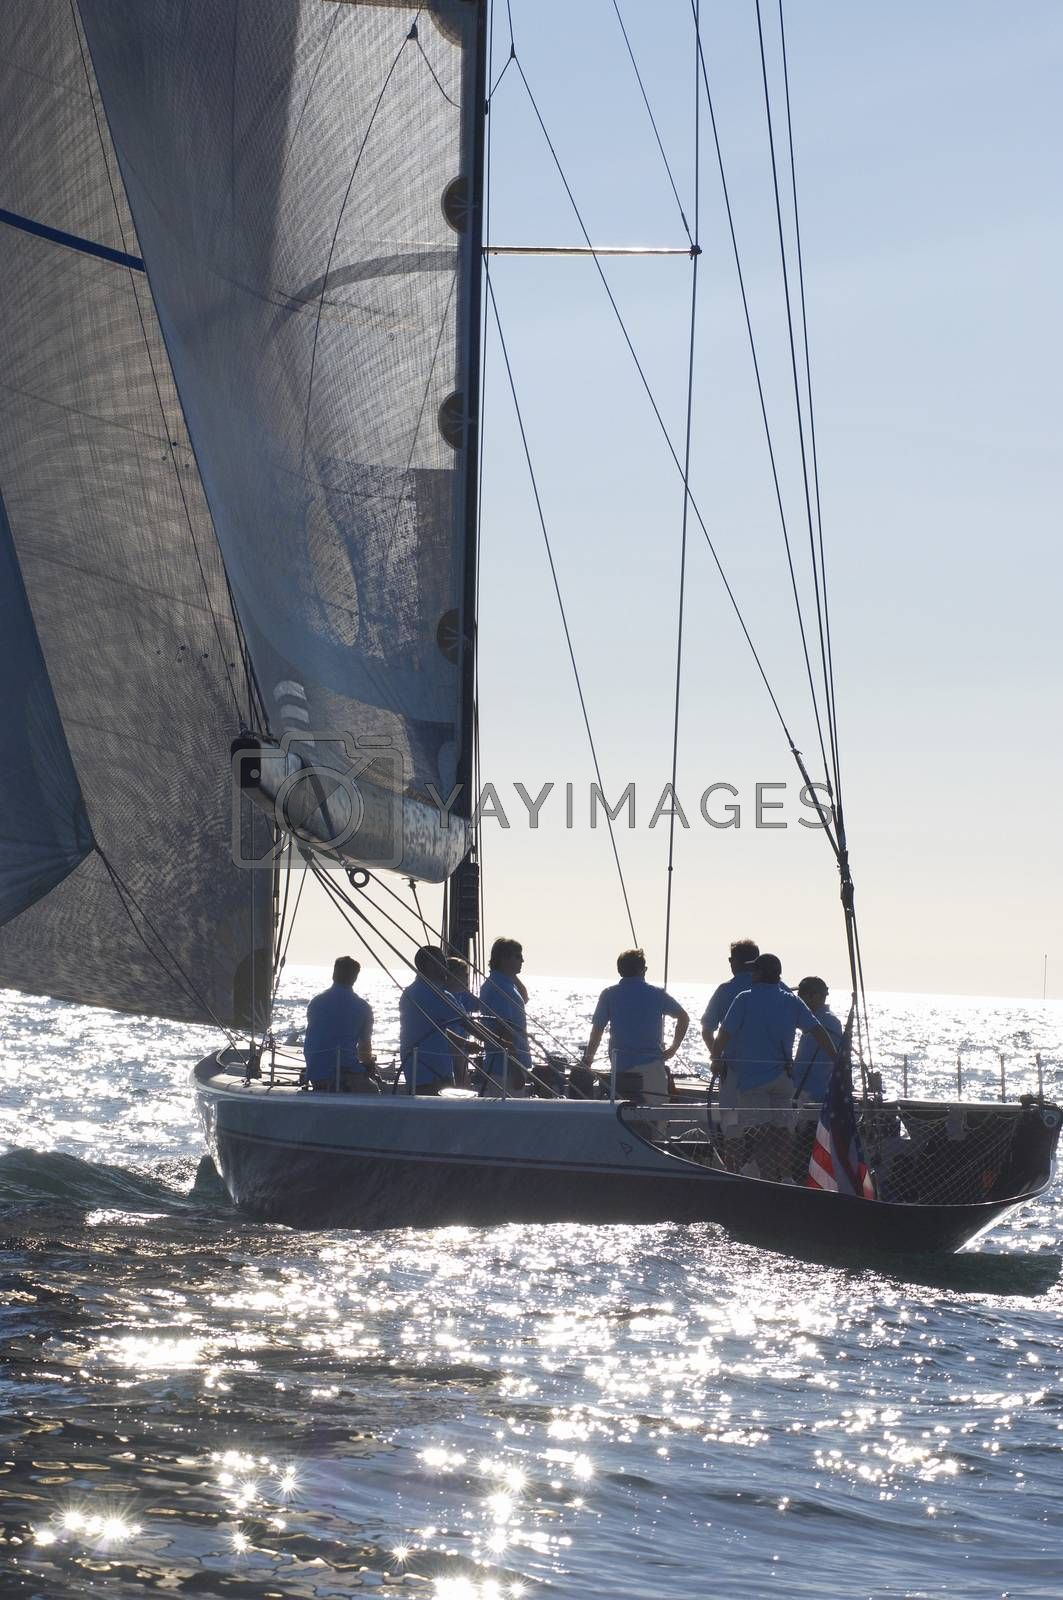 Photo of Sailing team on sailboat